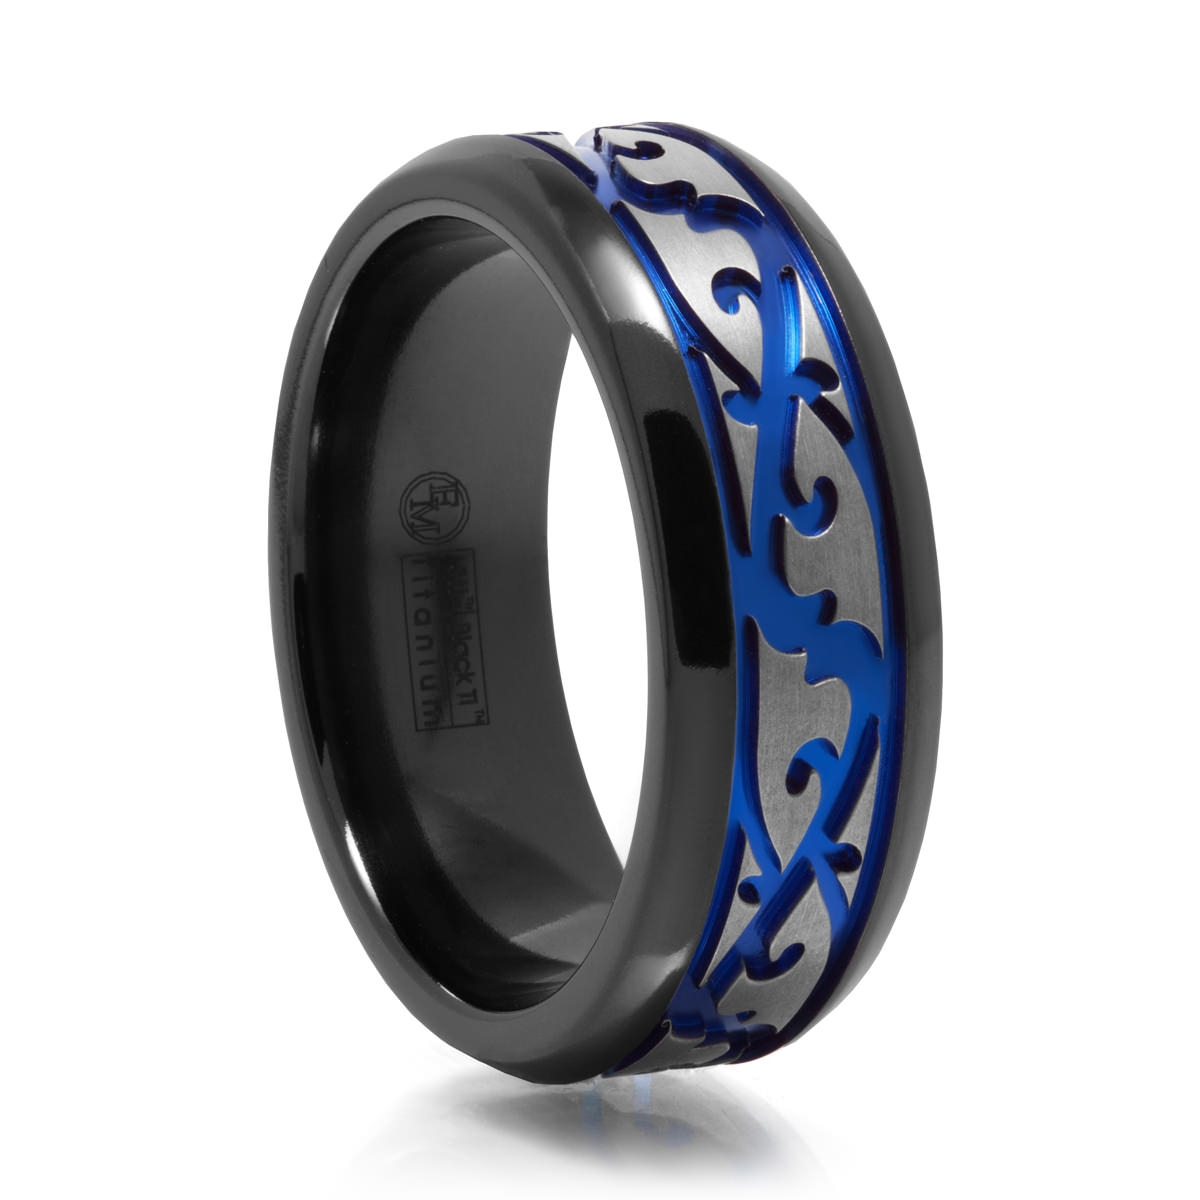 Men's Paisley Design Black Titanium Ring W/ Blue Groove With Regard To Blue Line Engagement Rings (View 8 of 15)